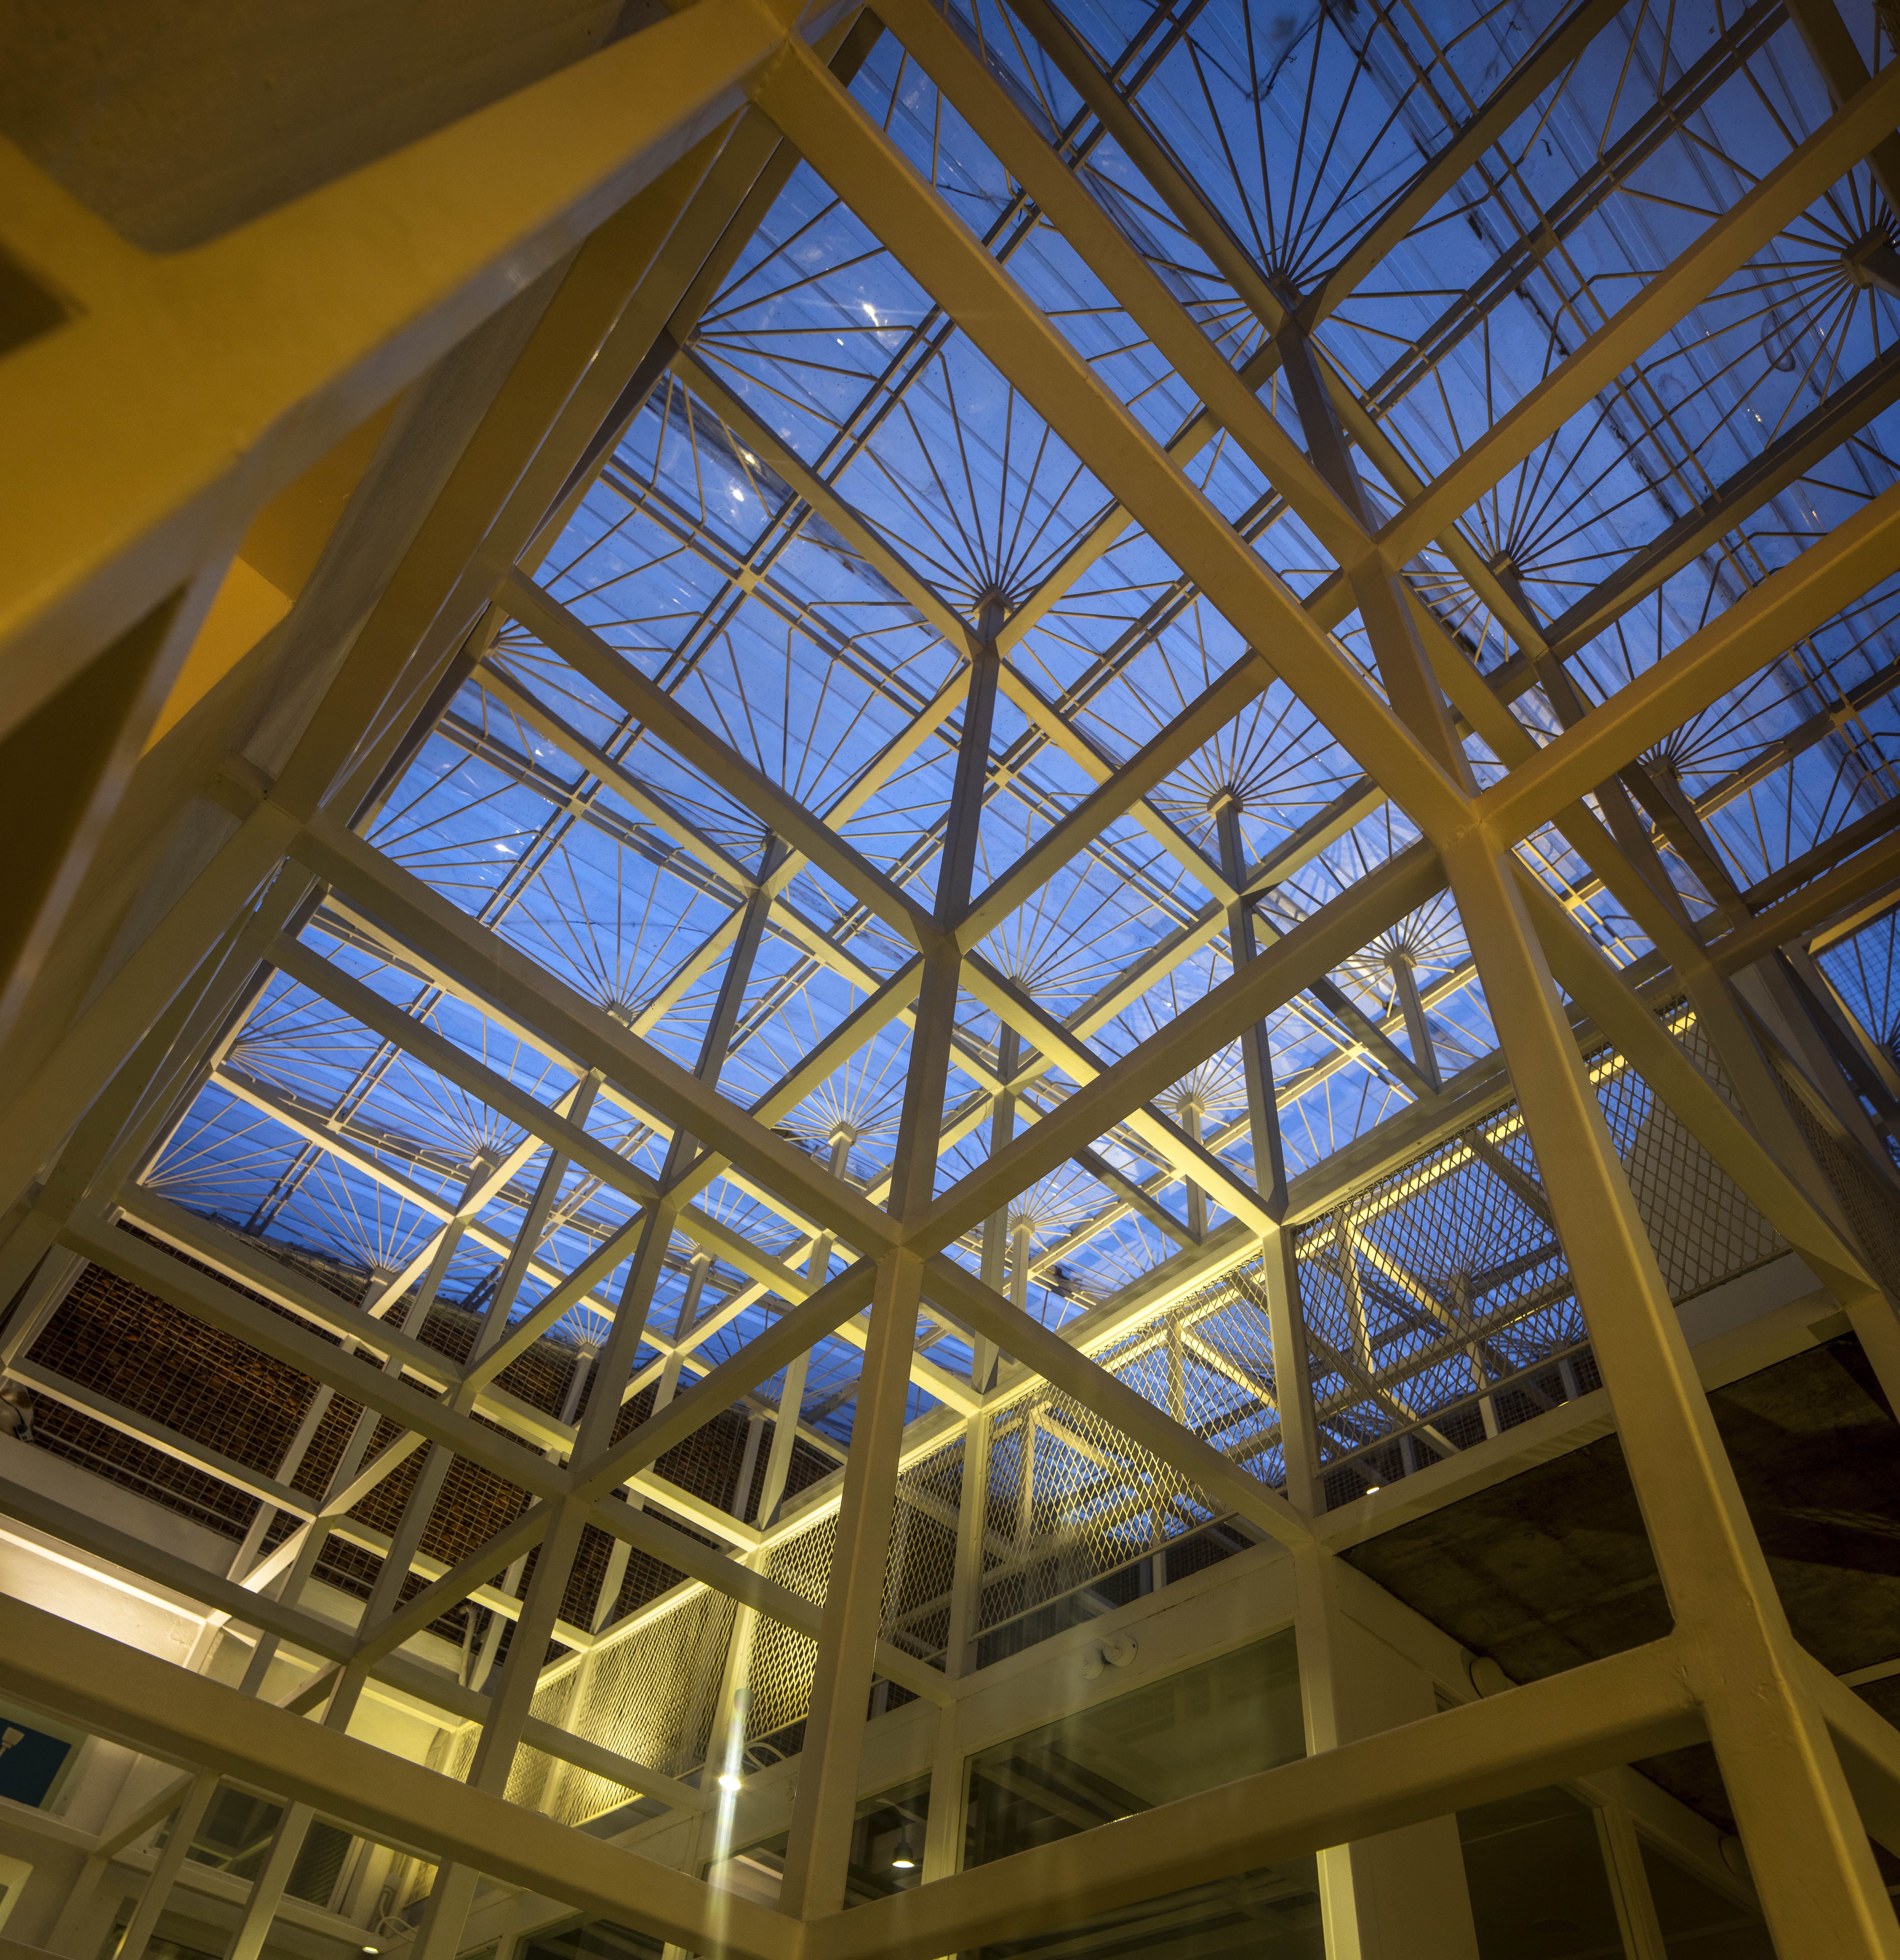 View of internal frame at night